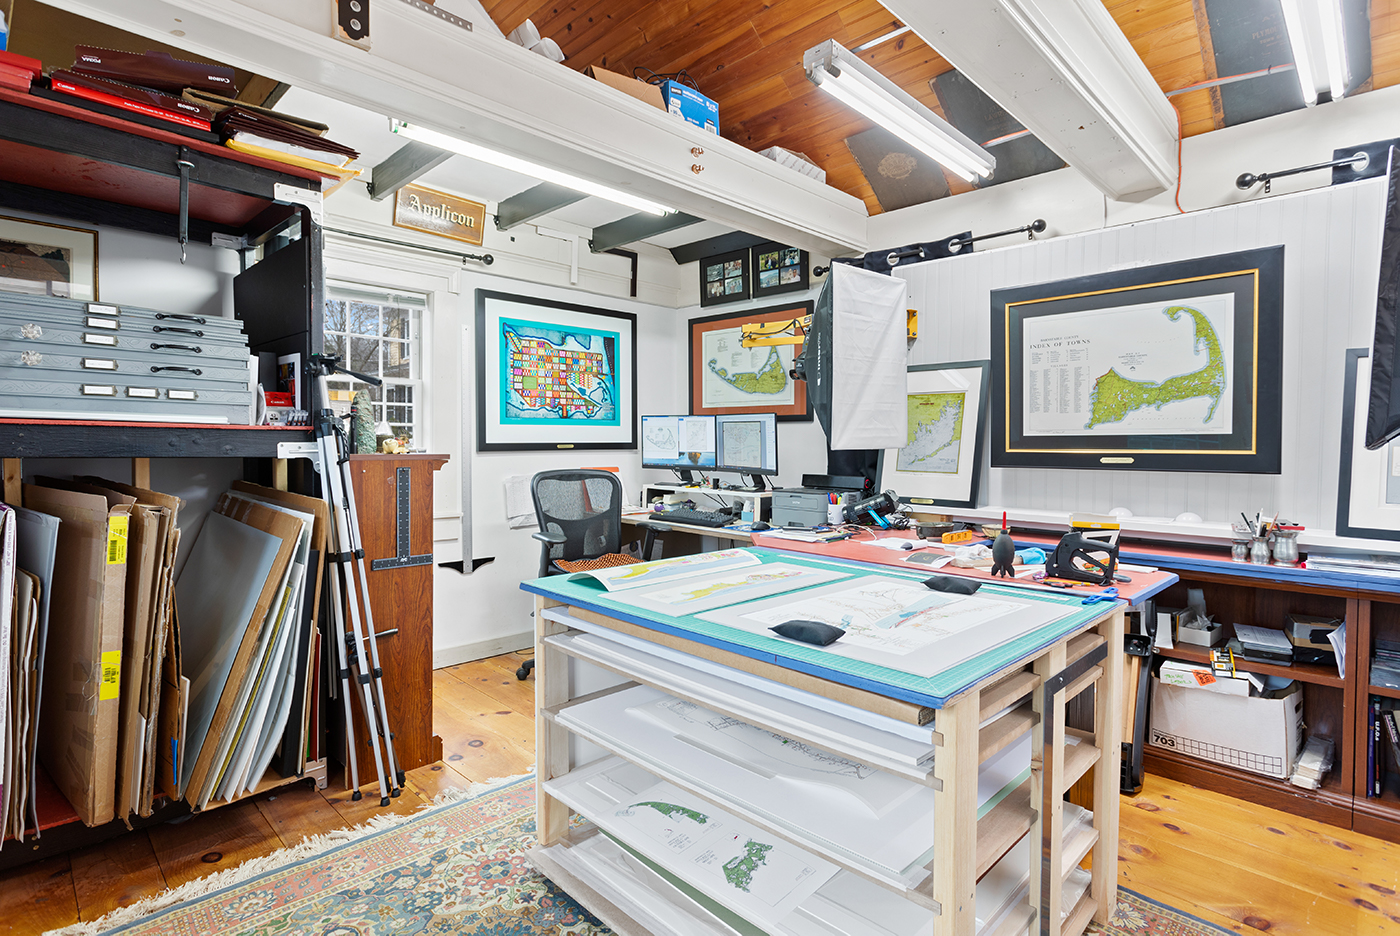 Office with wood ceiling and tray table and maps hanging on the wall